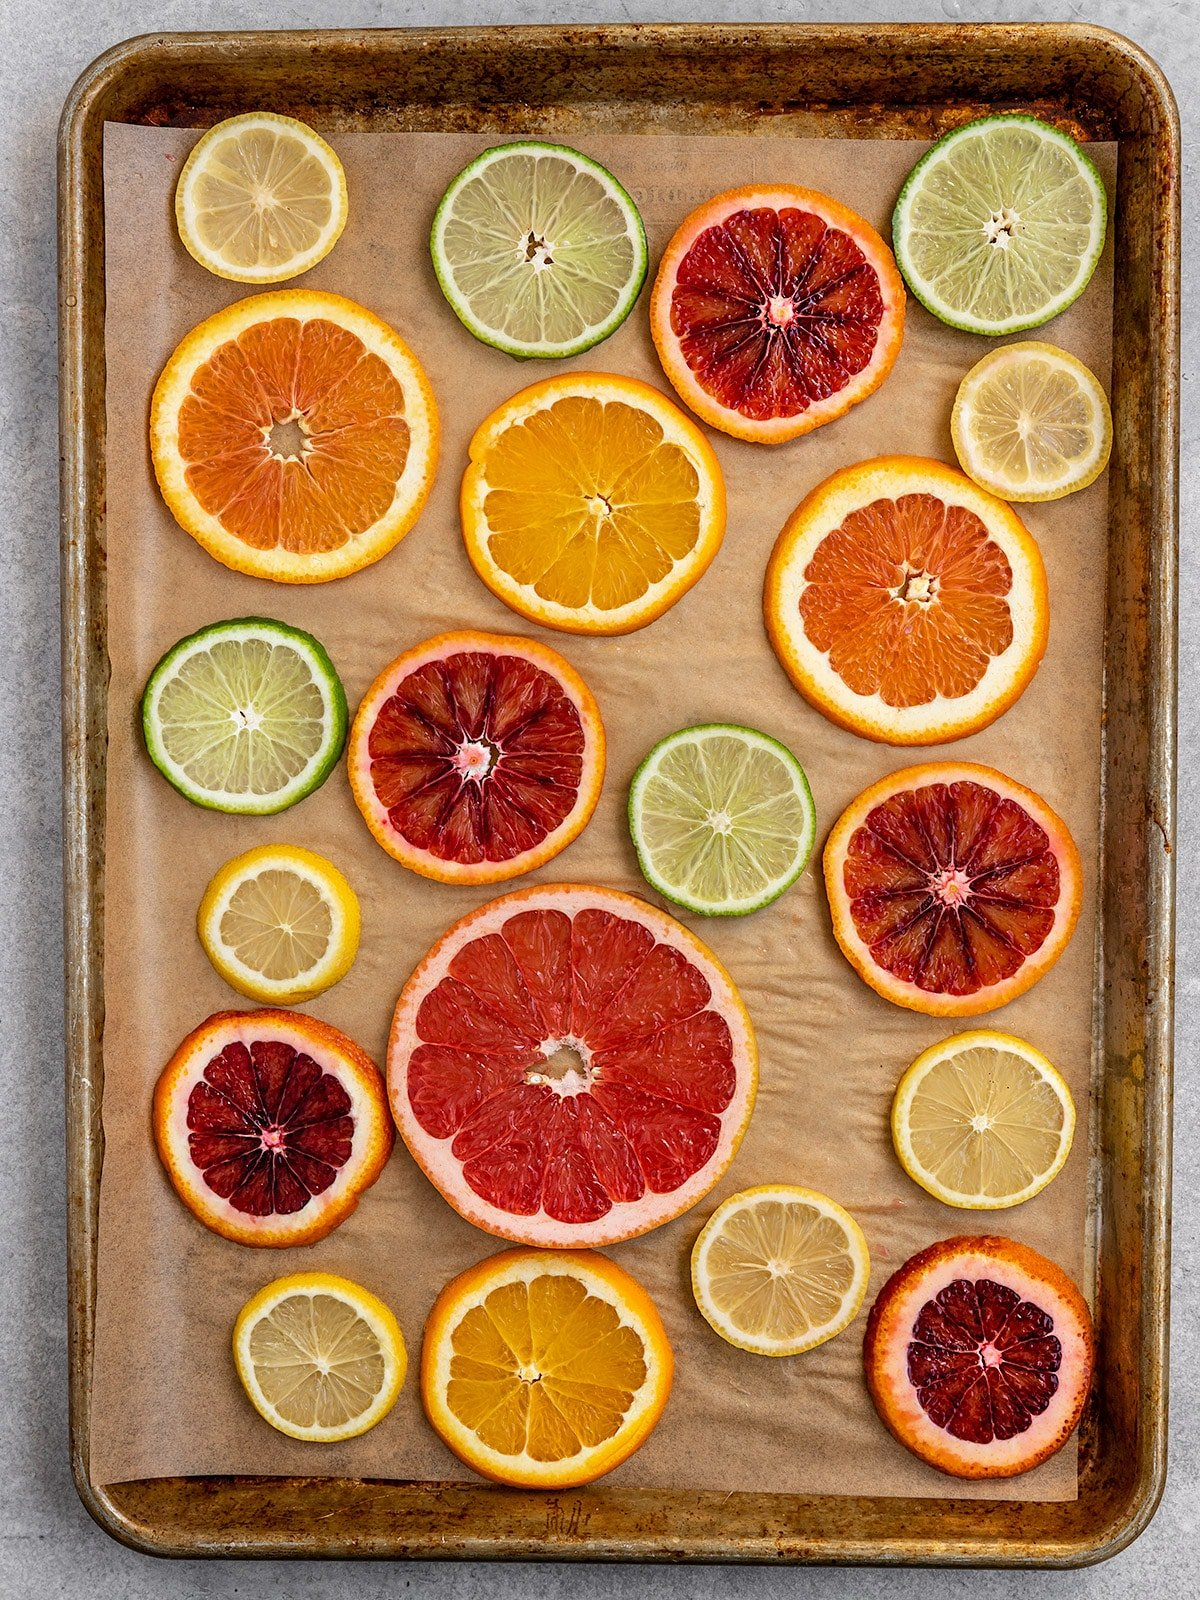 slices of oranges, lemons, limes, grapefruit, and blood oranges on a baking tray